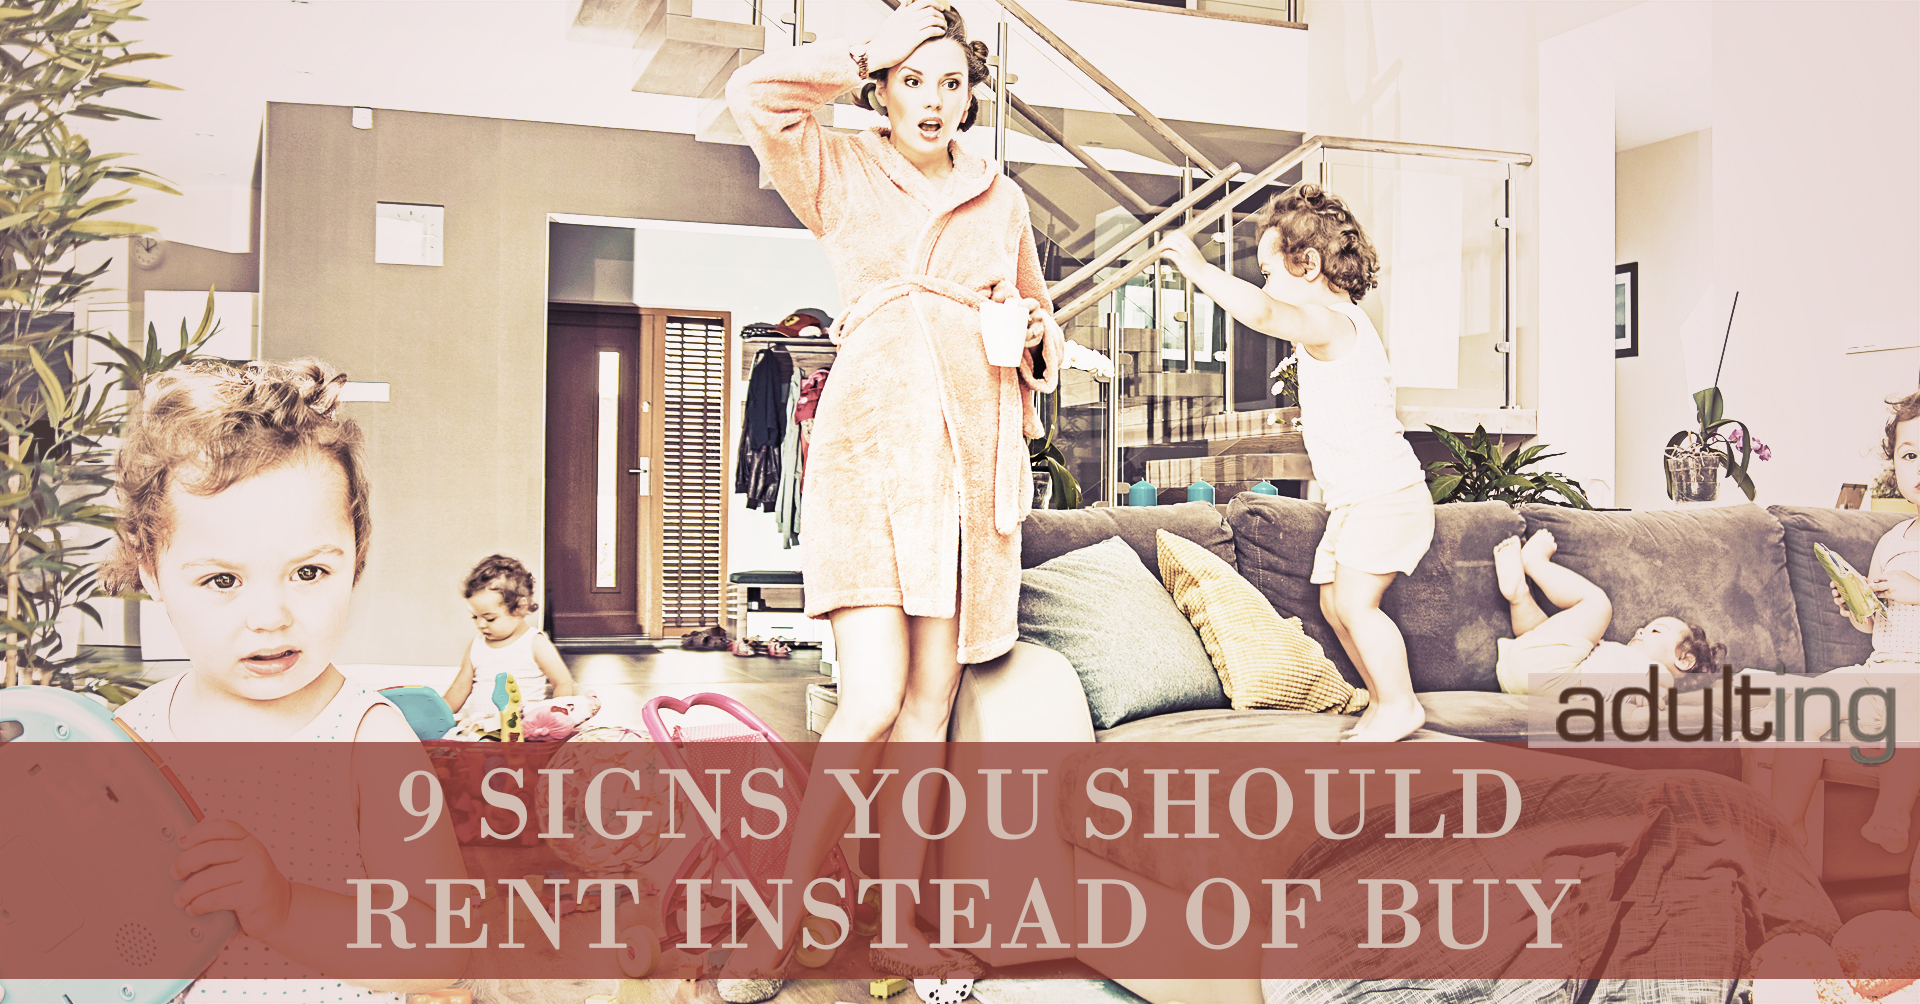 9 Signs You Should Rent Instead of Buy